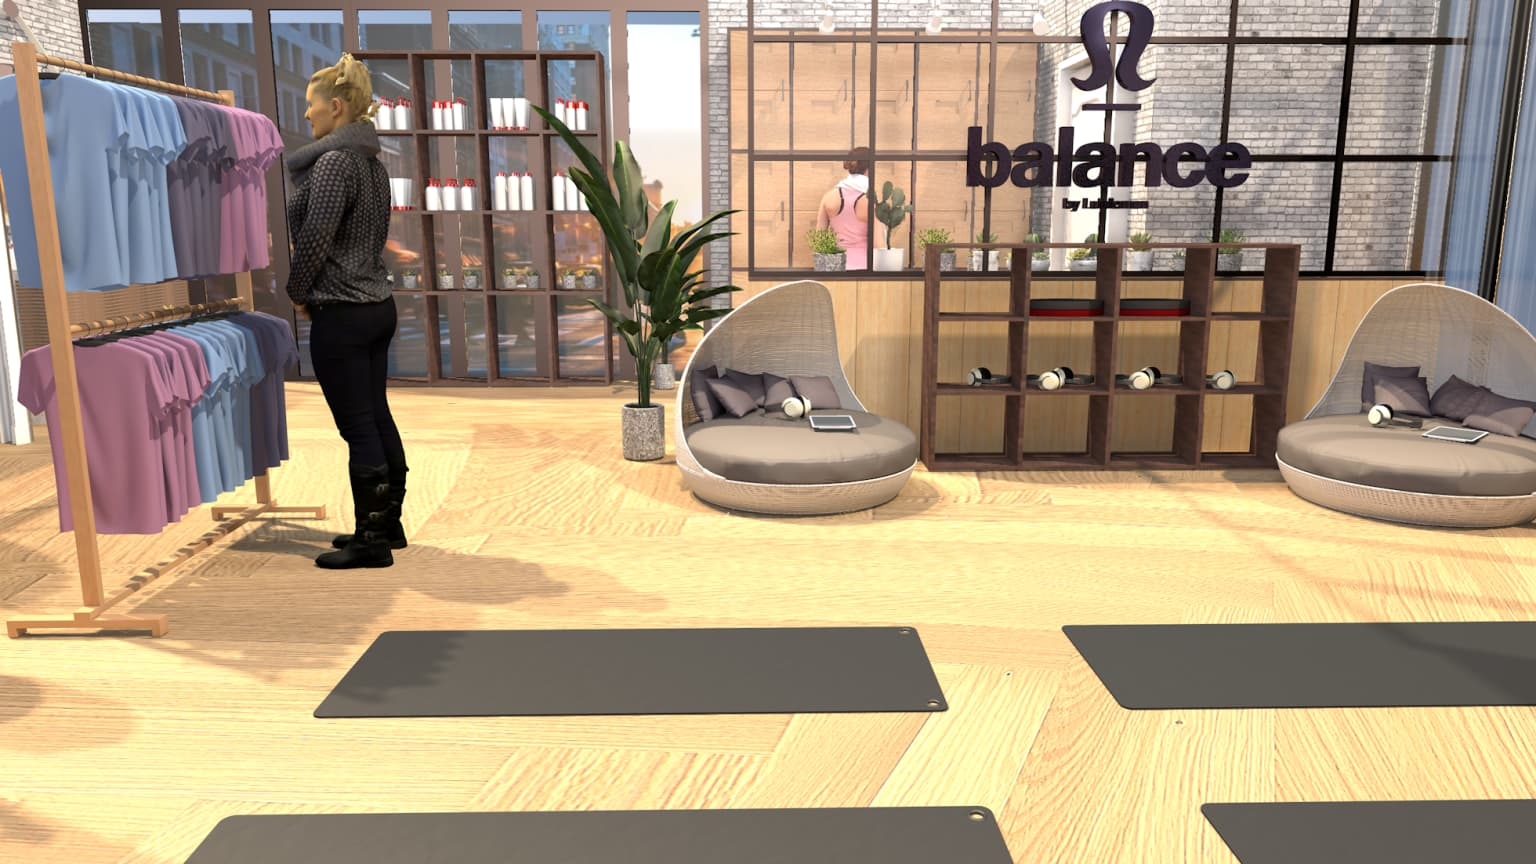 balance by lululemon - Store Concept